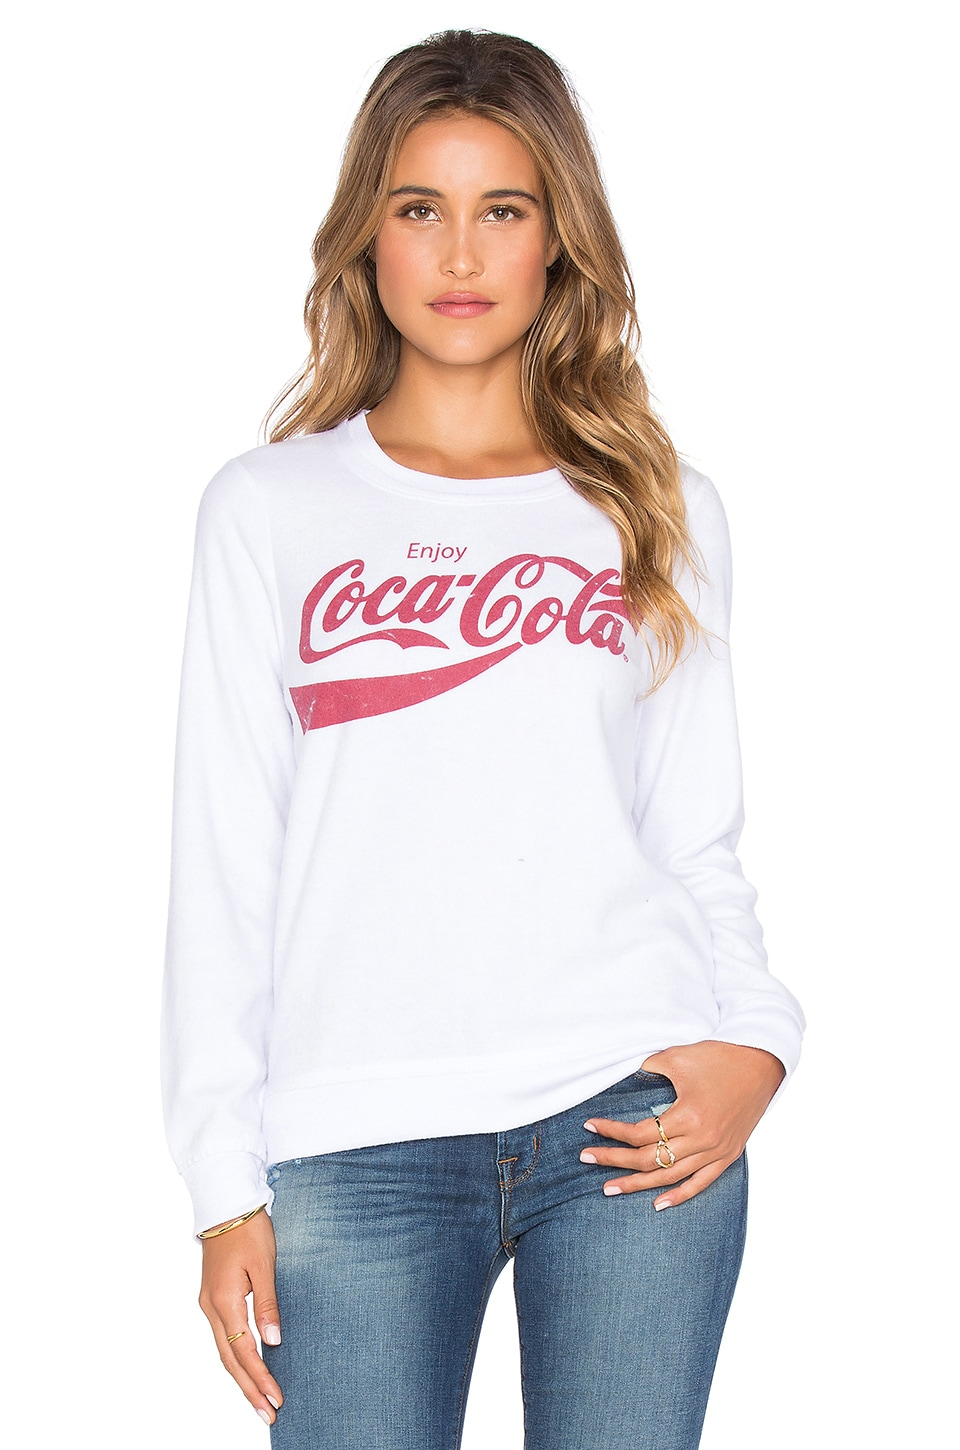 Vintage Coca-Cola Graphic Tee